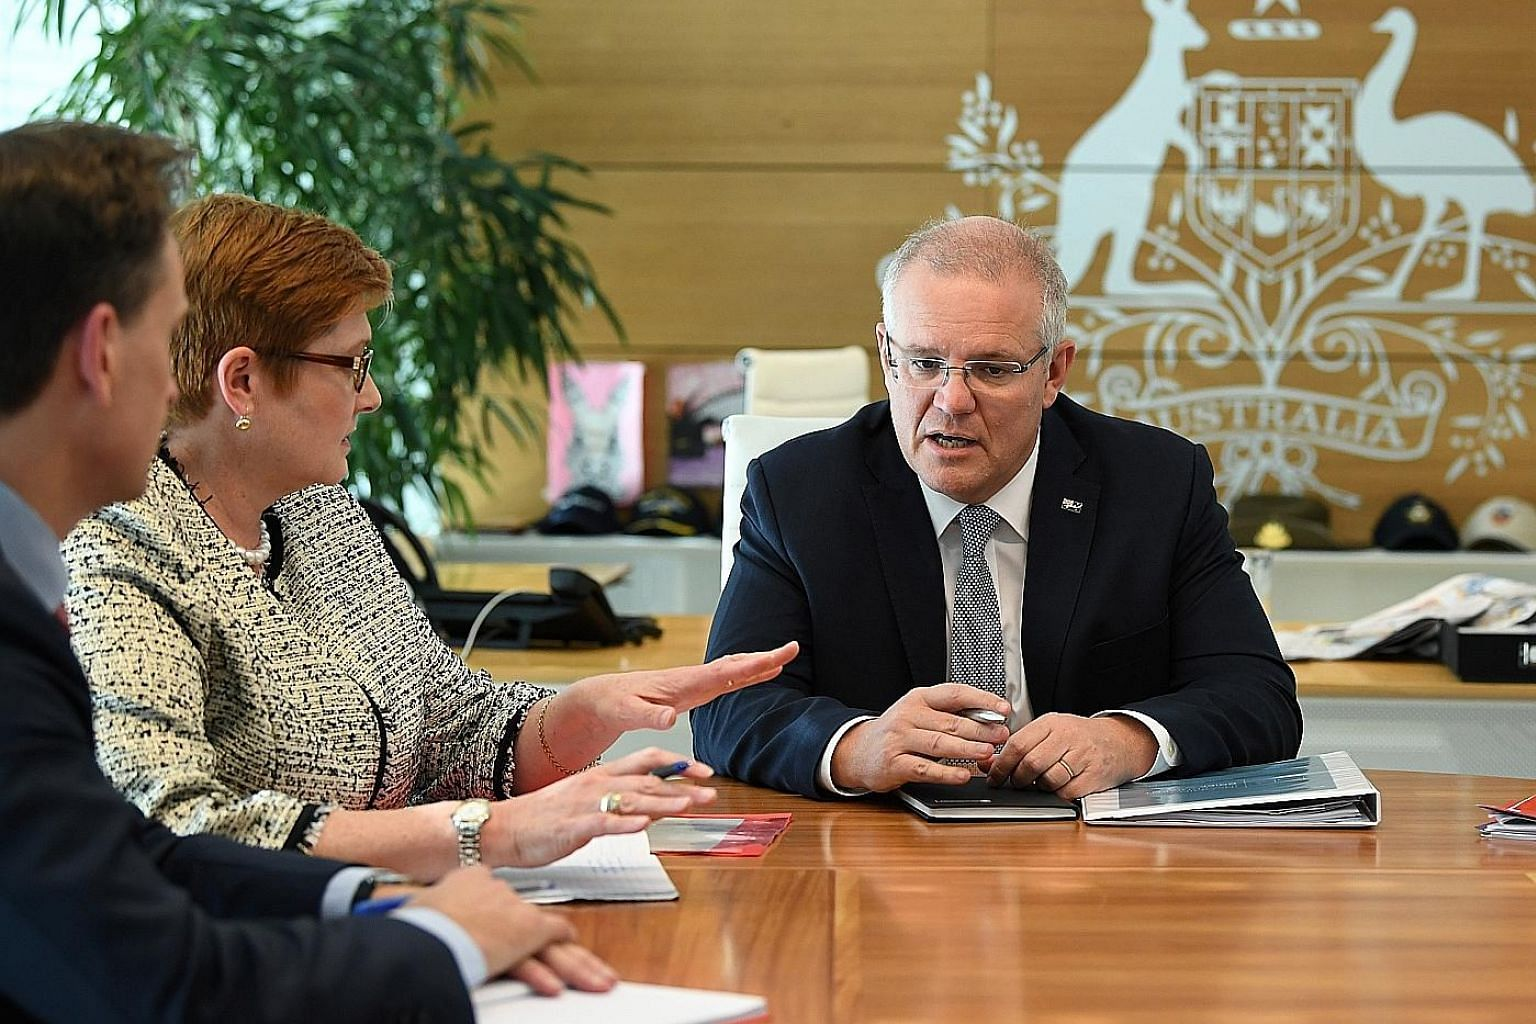 Australia's Prime Minister Scott Morrison with Foreign Minister Marise Payne at a meeting at the Commonwealth Parliament Offices in Sydney yesterday.